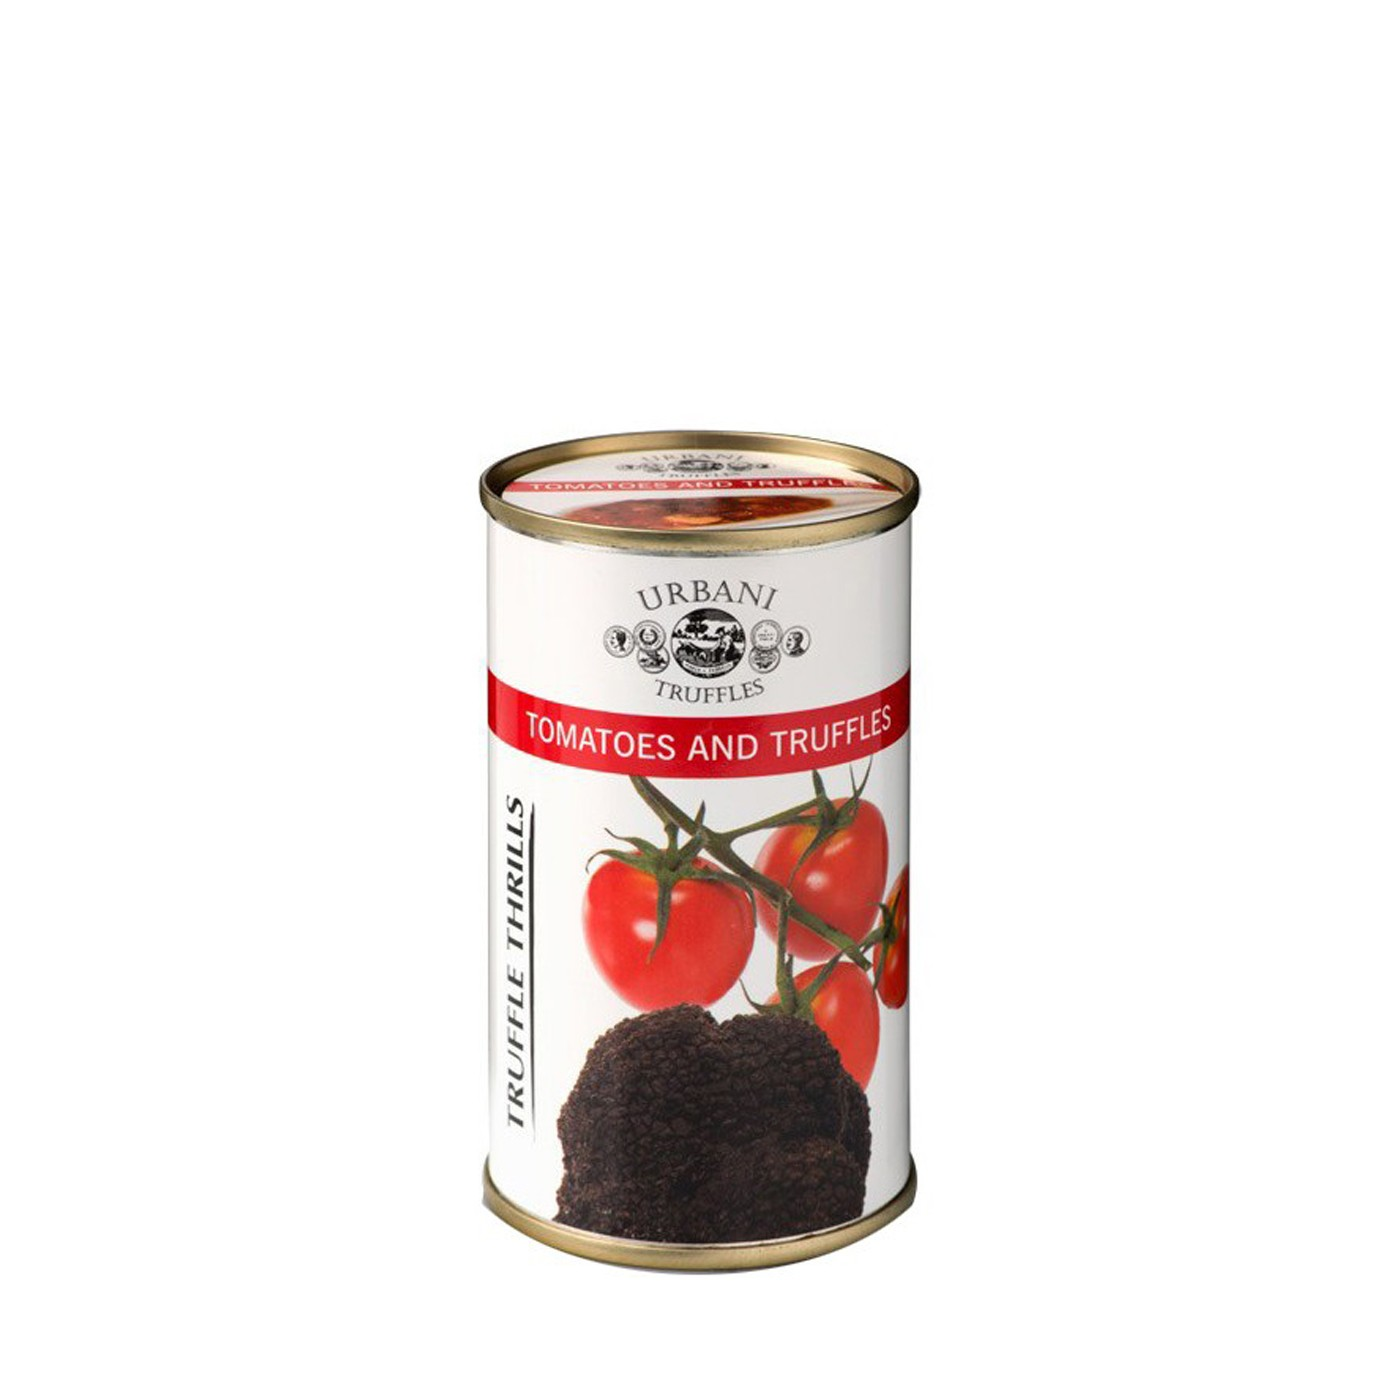 Tomato and Truffle Sauce 6.3 oz